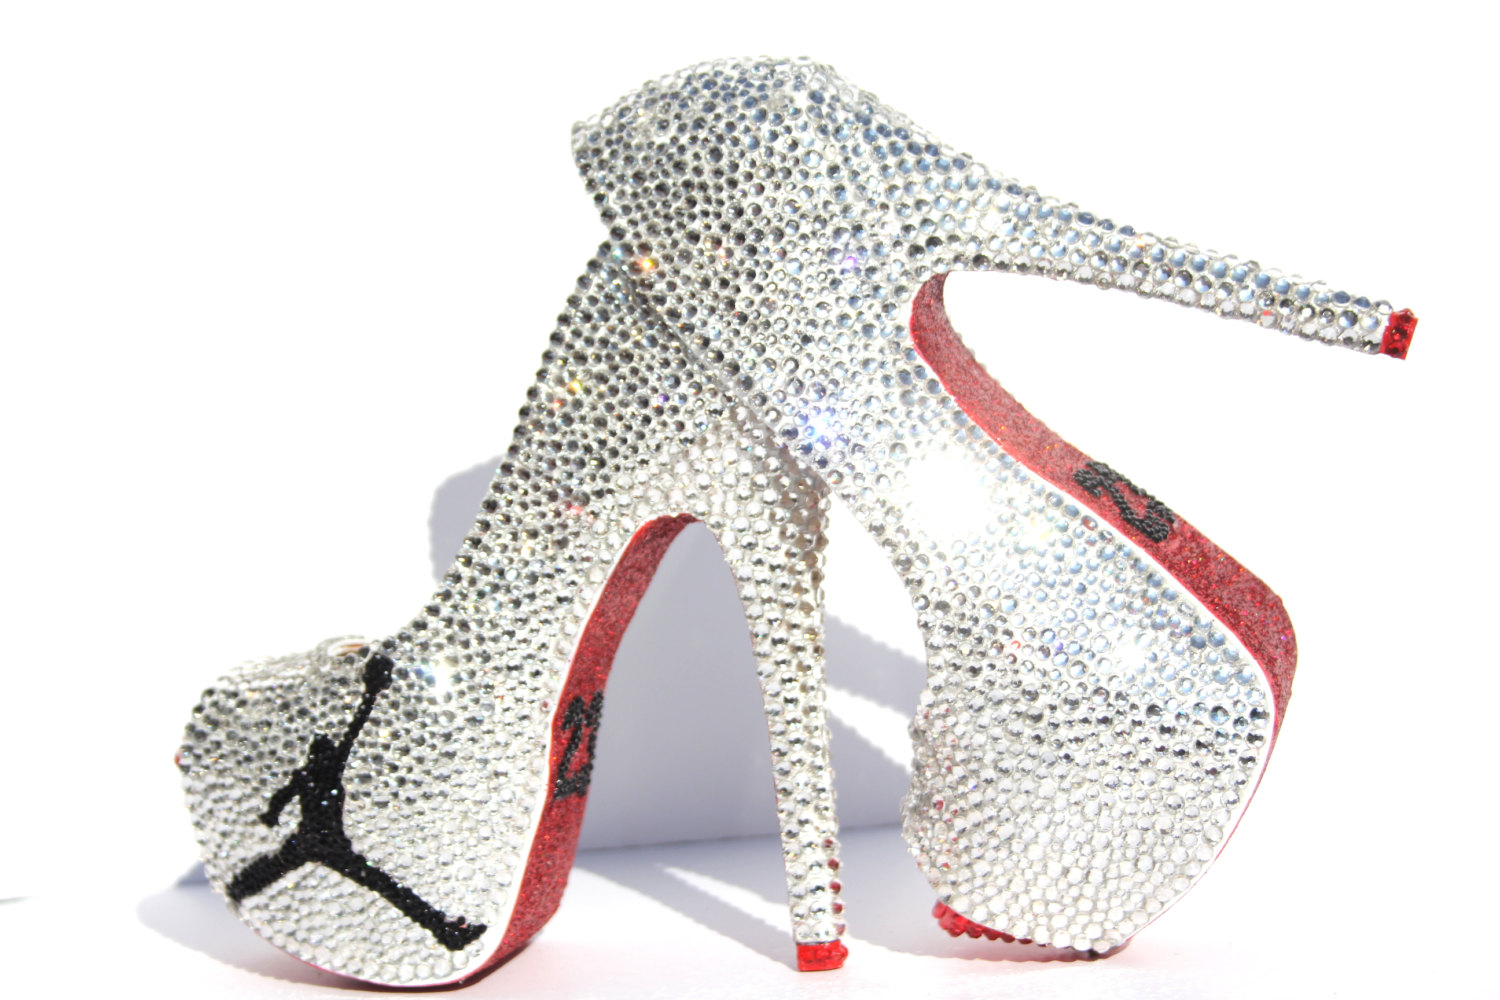 Jordan 23 High Heels covered in Swarovski Crystals with Red